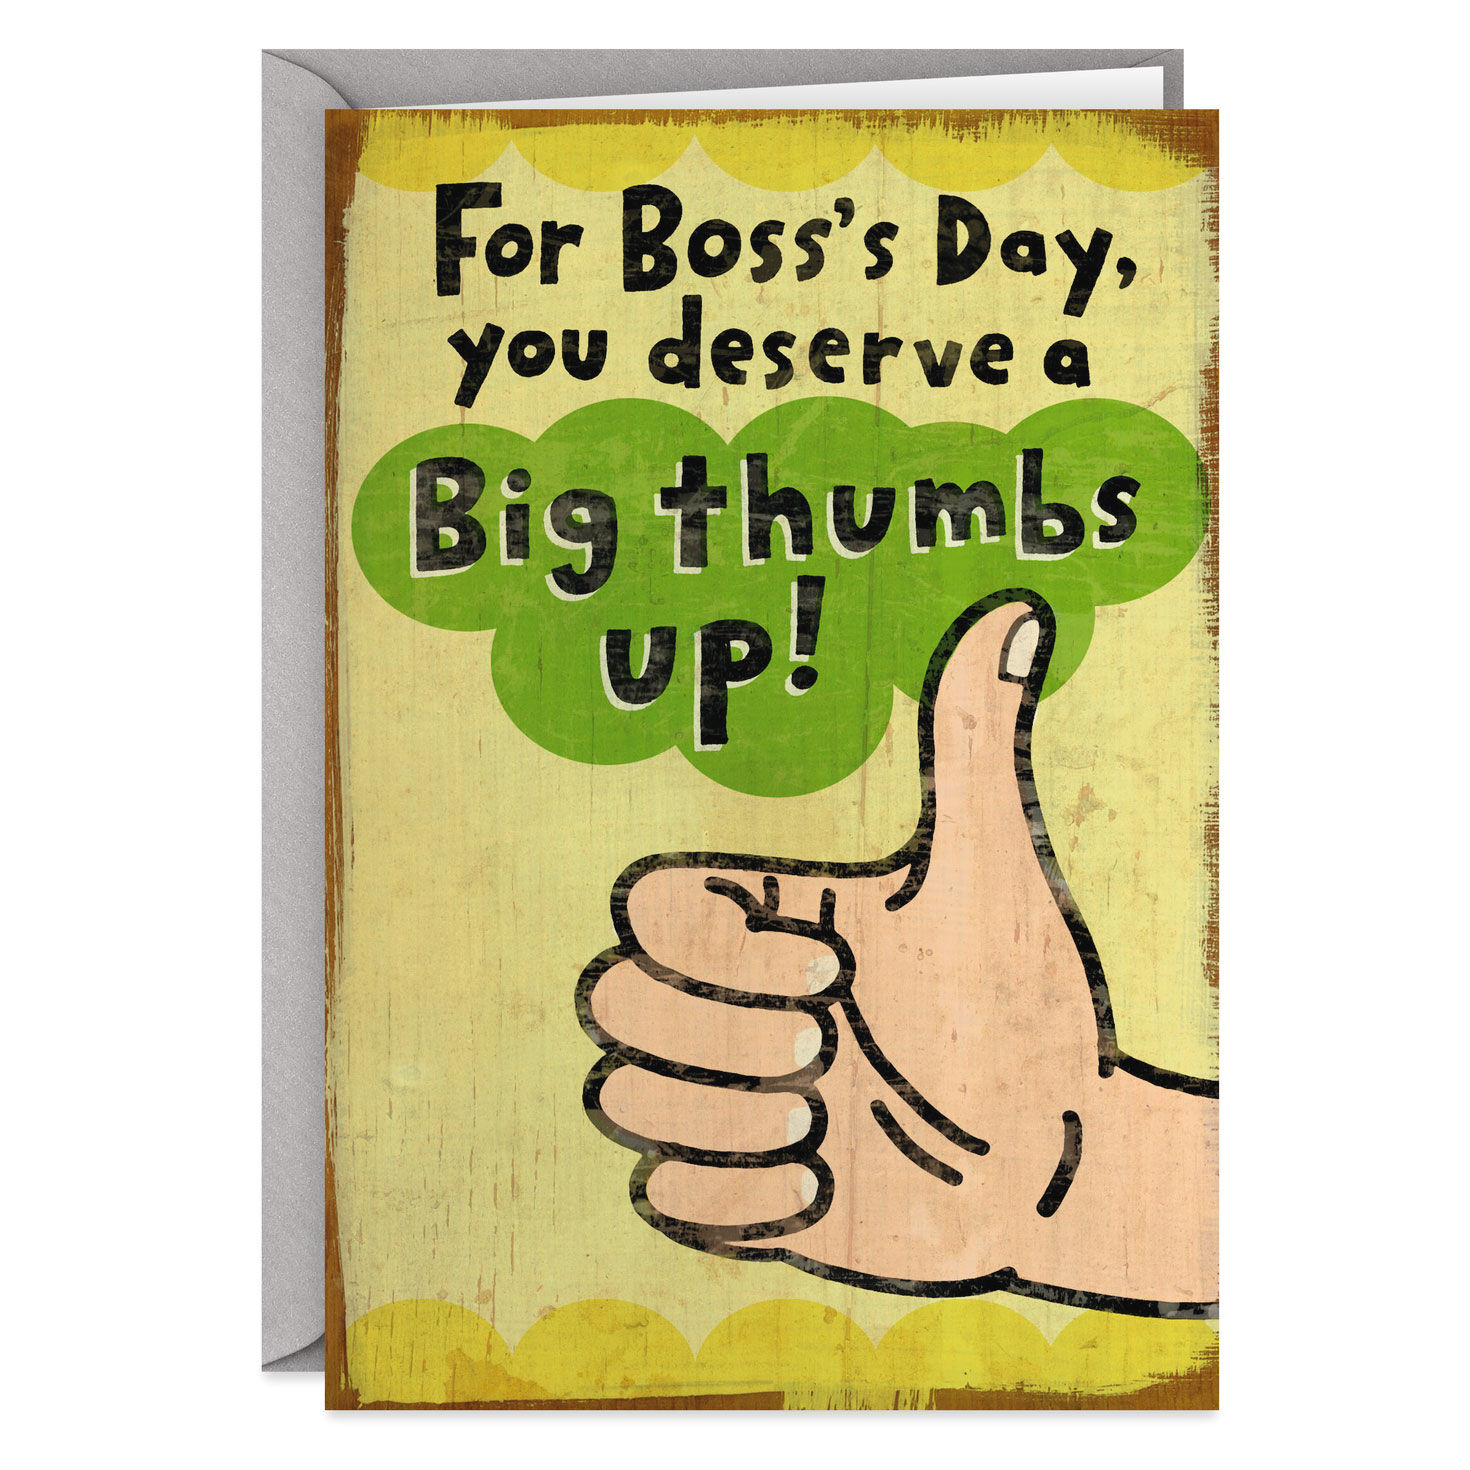 graphic about Bosses Day Cards Printable named Substantial Thumbs Up Humorous Bosss Working day Card